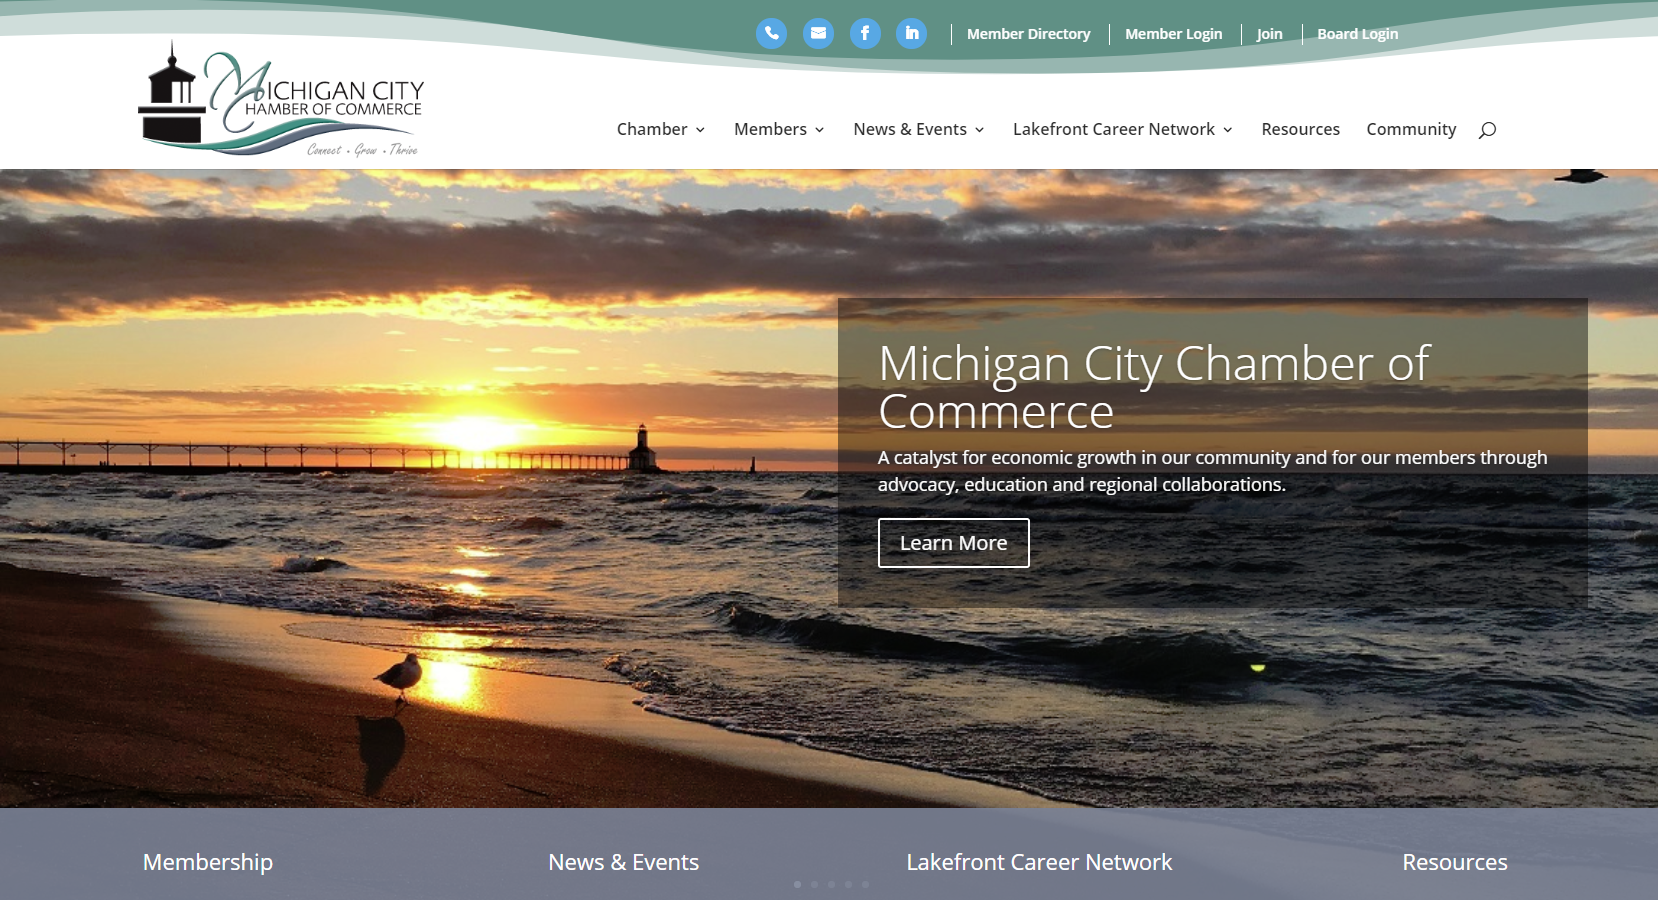 MichiganCityWebsite